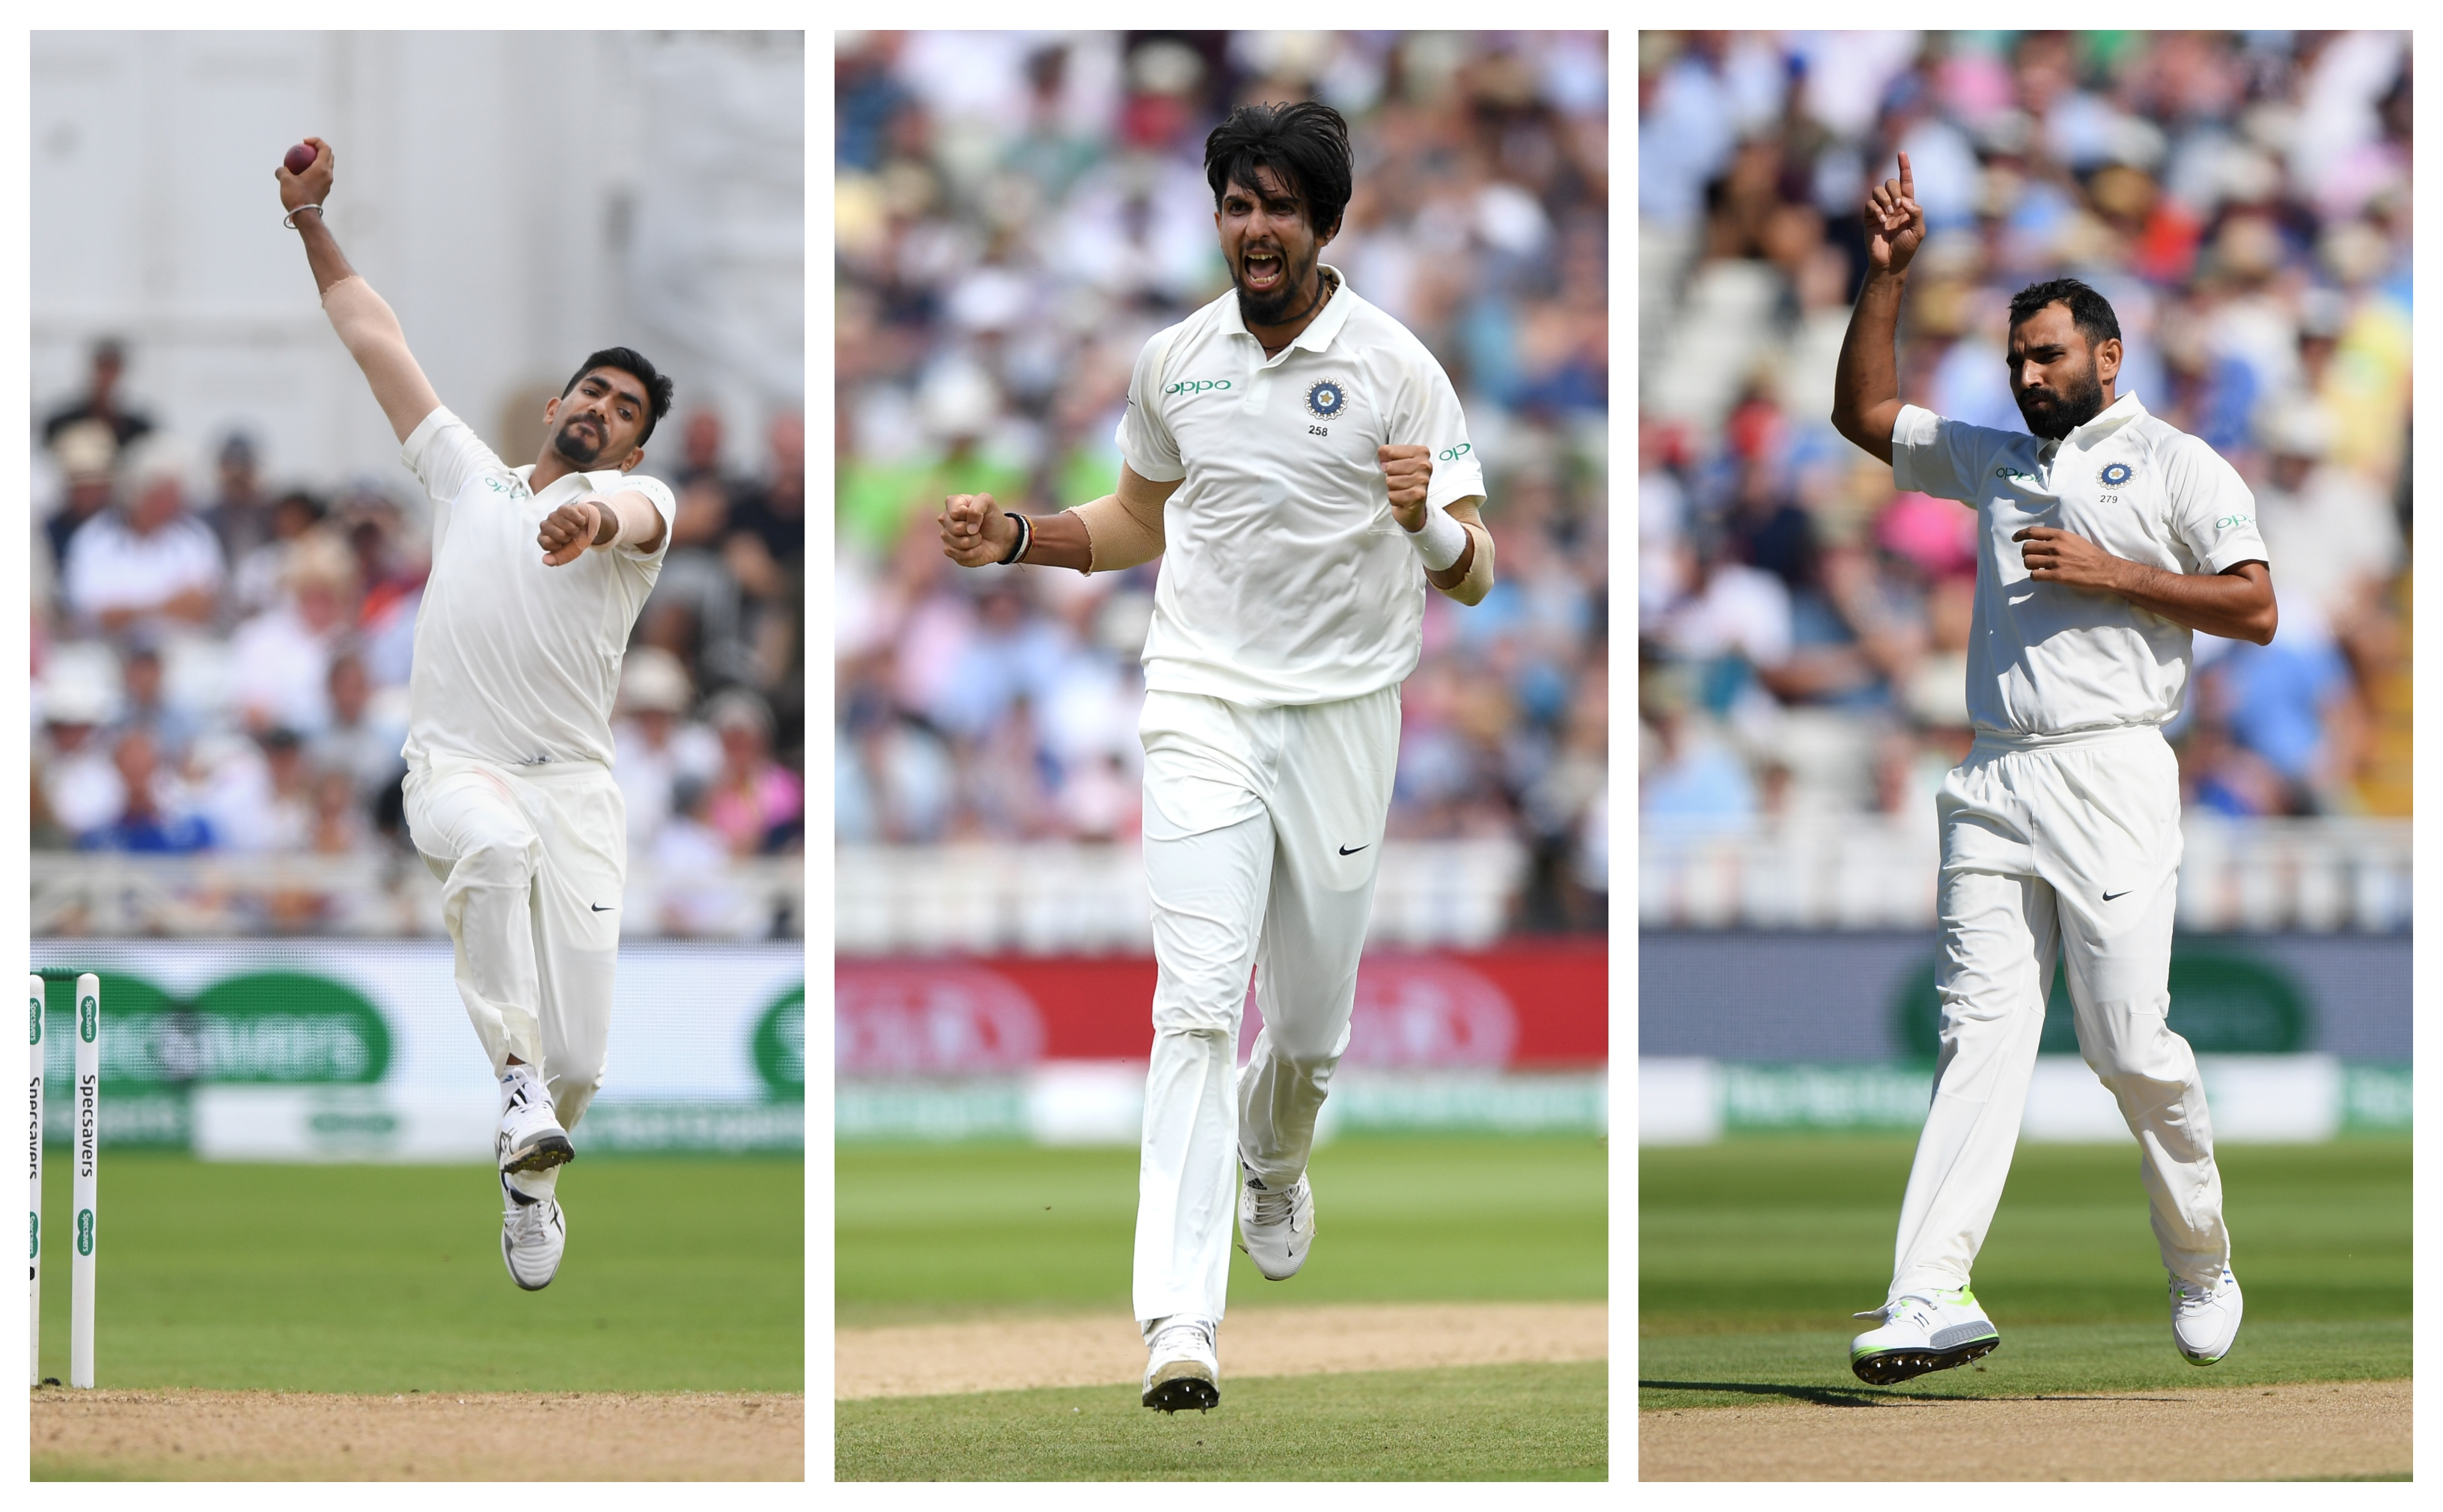 Ishant Sharma, Mohammad Shami and Jasprit Bumrah were magnificent in England